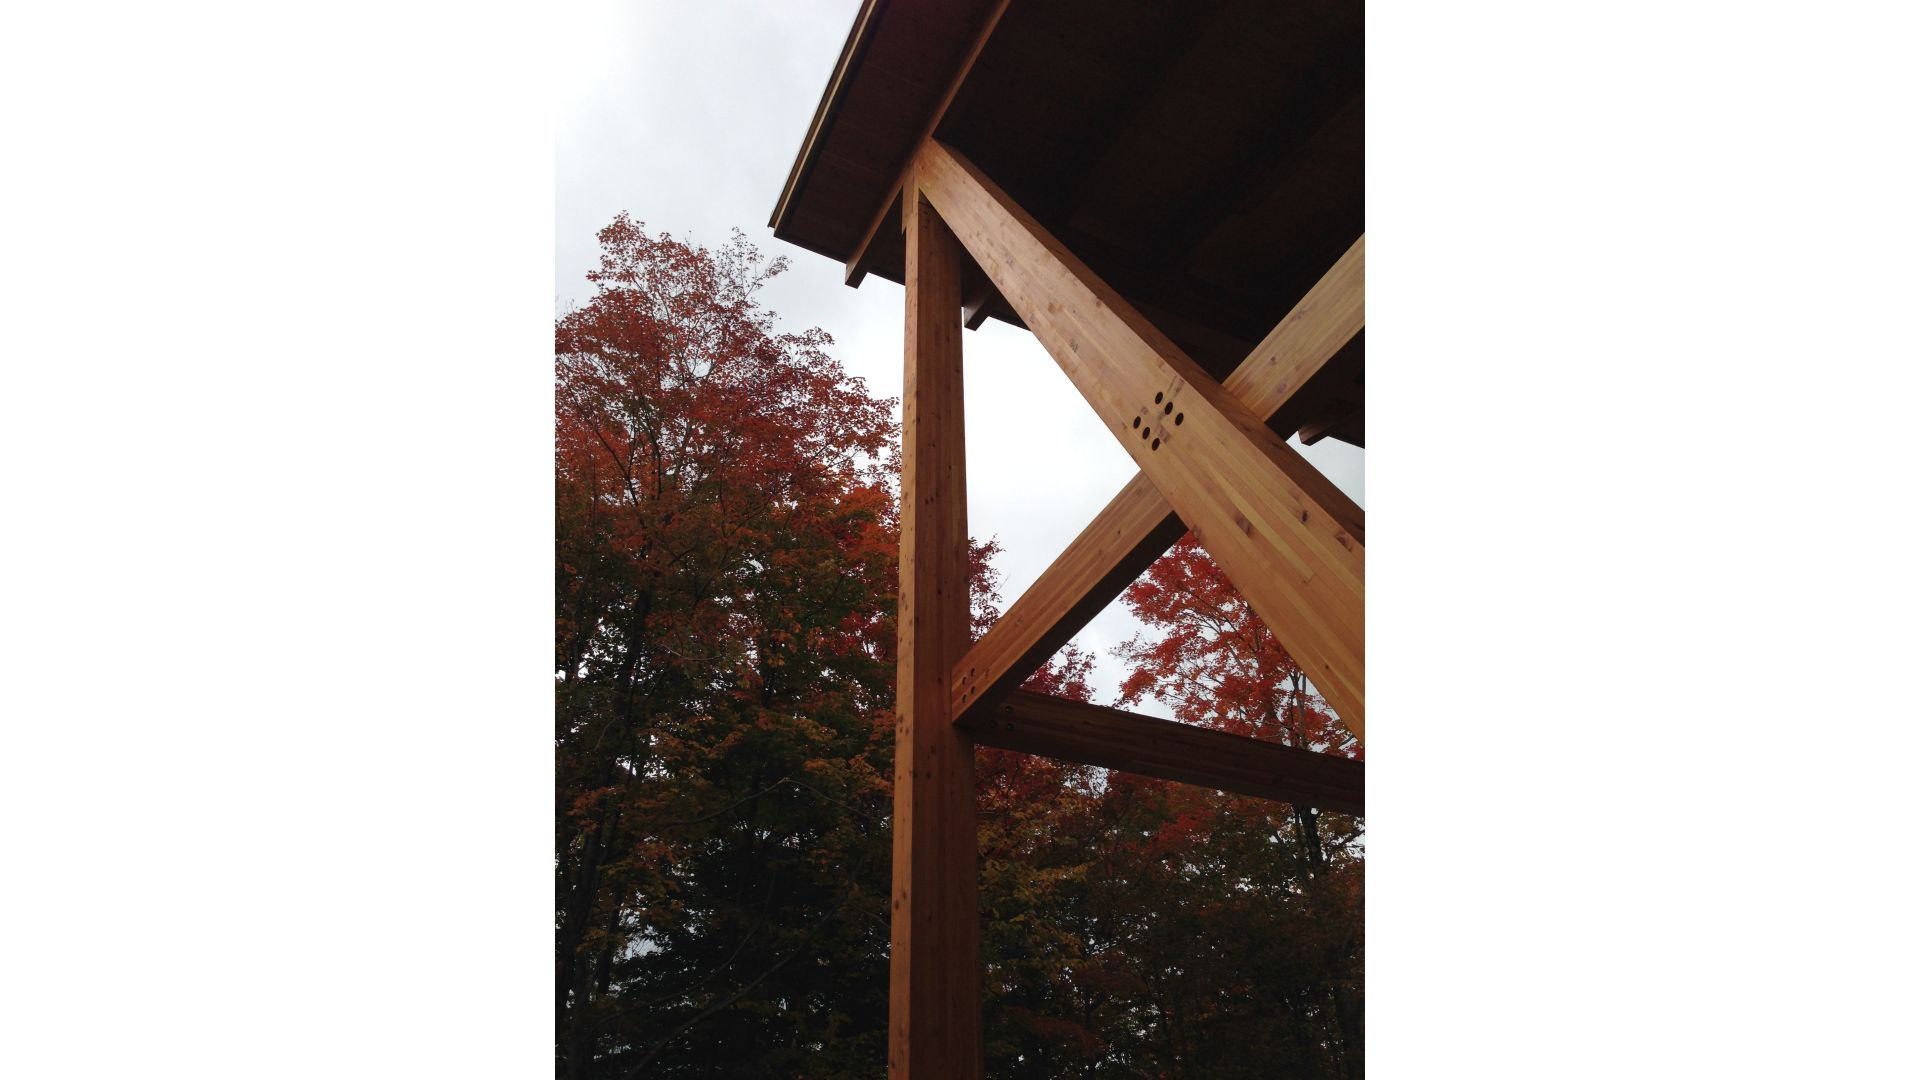 For The Manufacturer (La Charpenterie Du Quebec), We Validated Dimensions  Of The Glulam (glue Laminated Wood) Frame And Designed All The Hidden Steel  ...